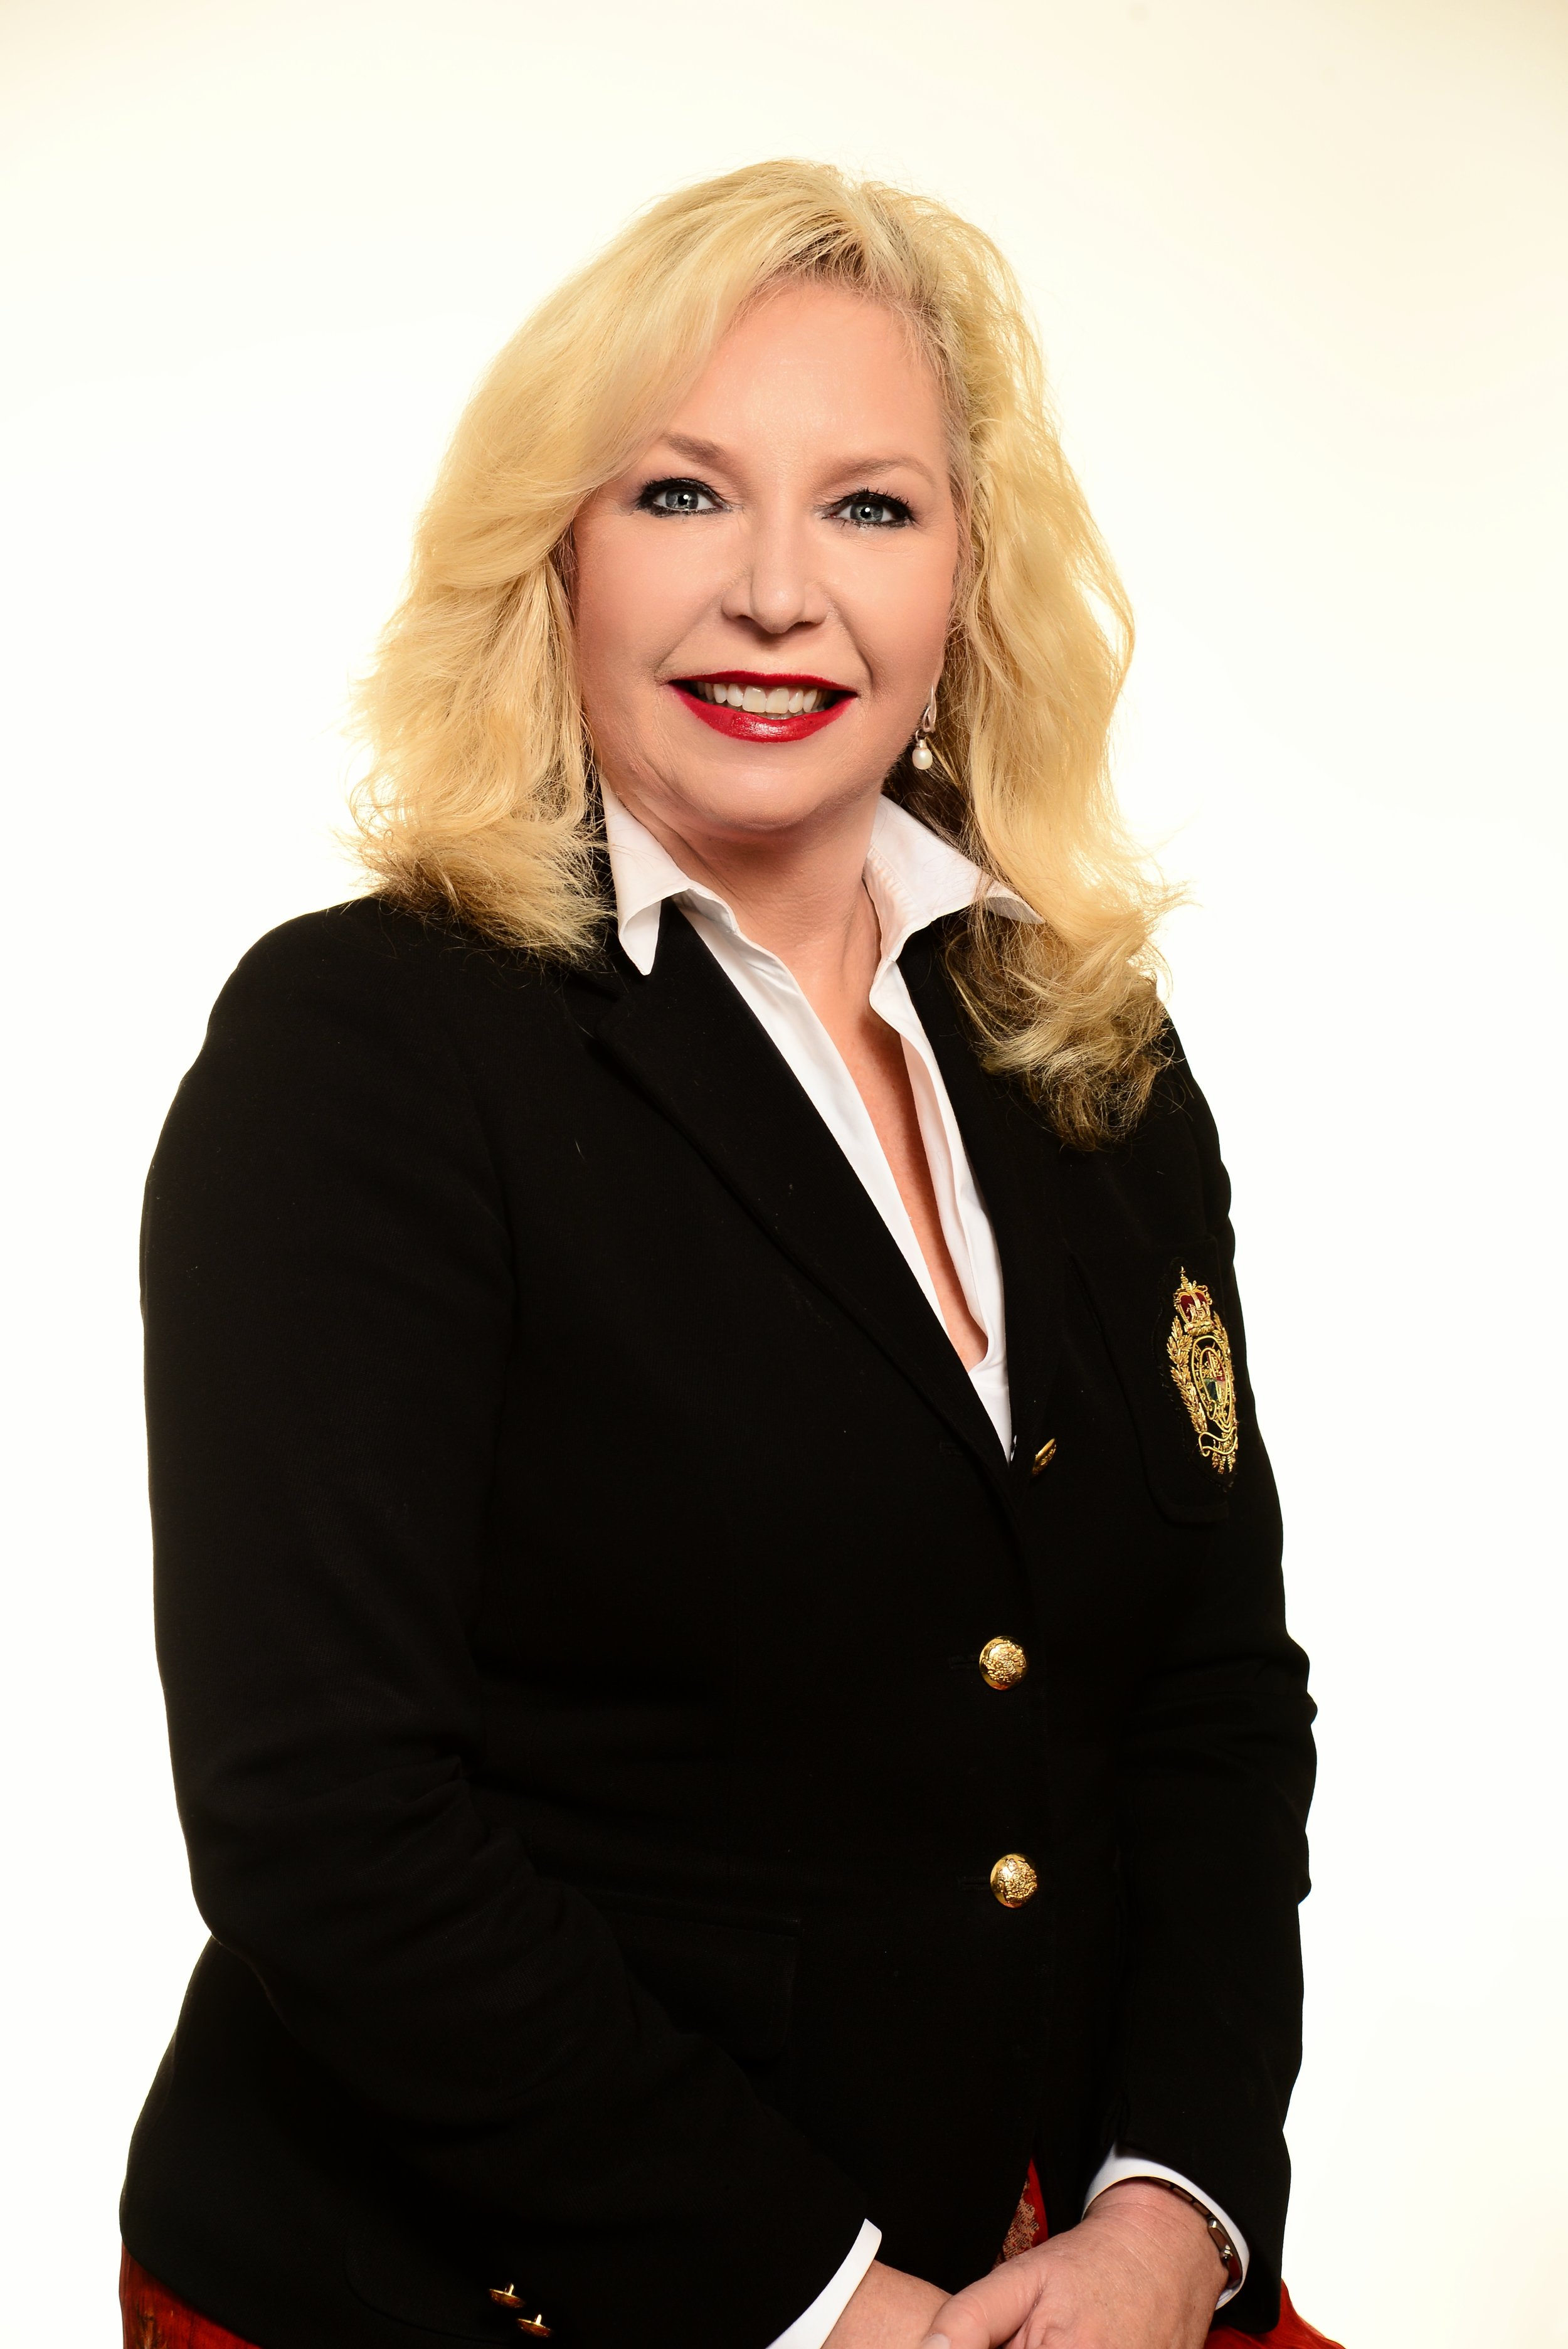 Colleen McPherson of Colliers International